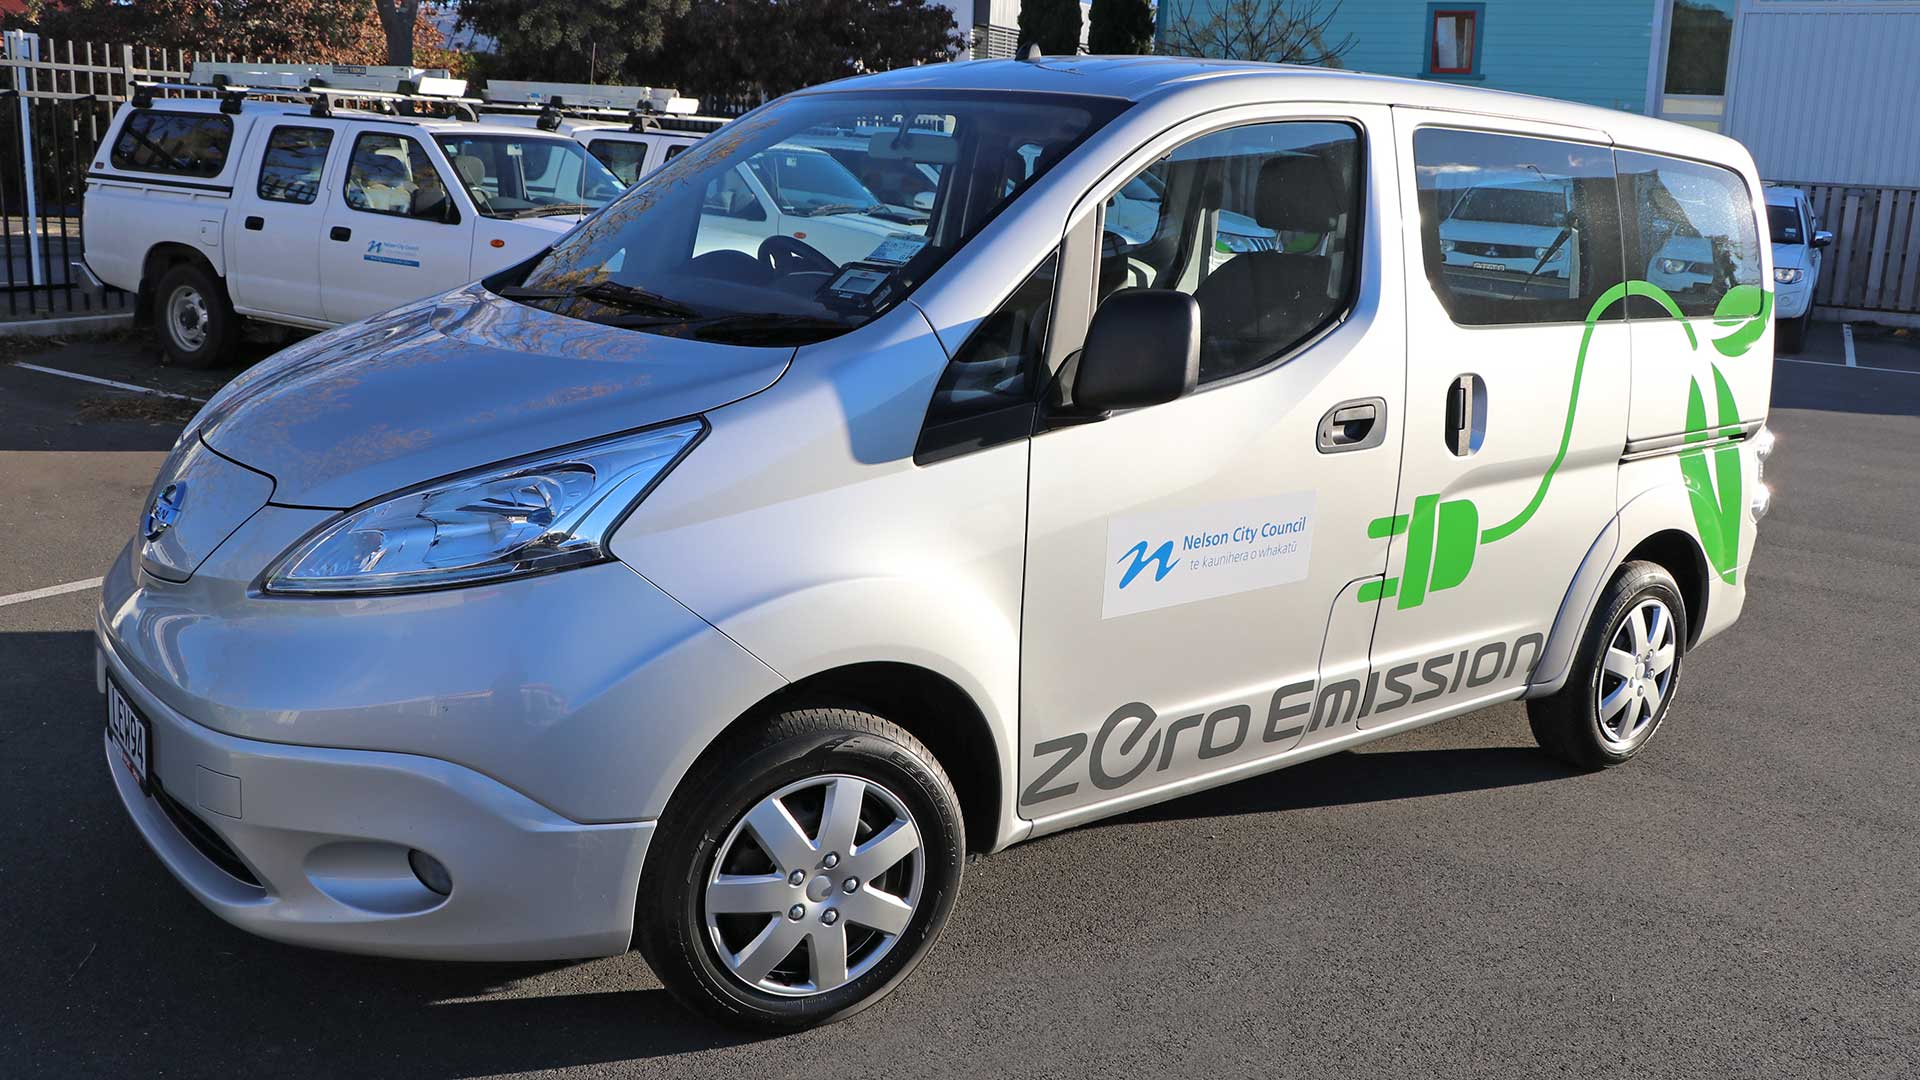 The first of Council's two Nissan e-NV200 vans all ready to go!